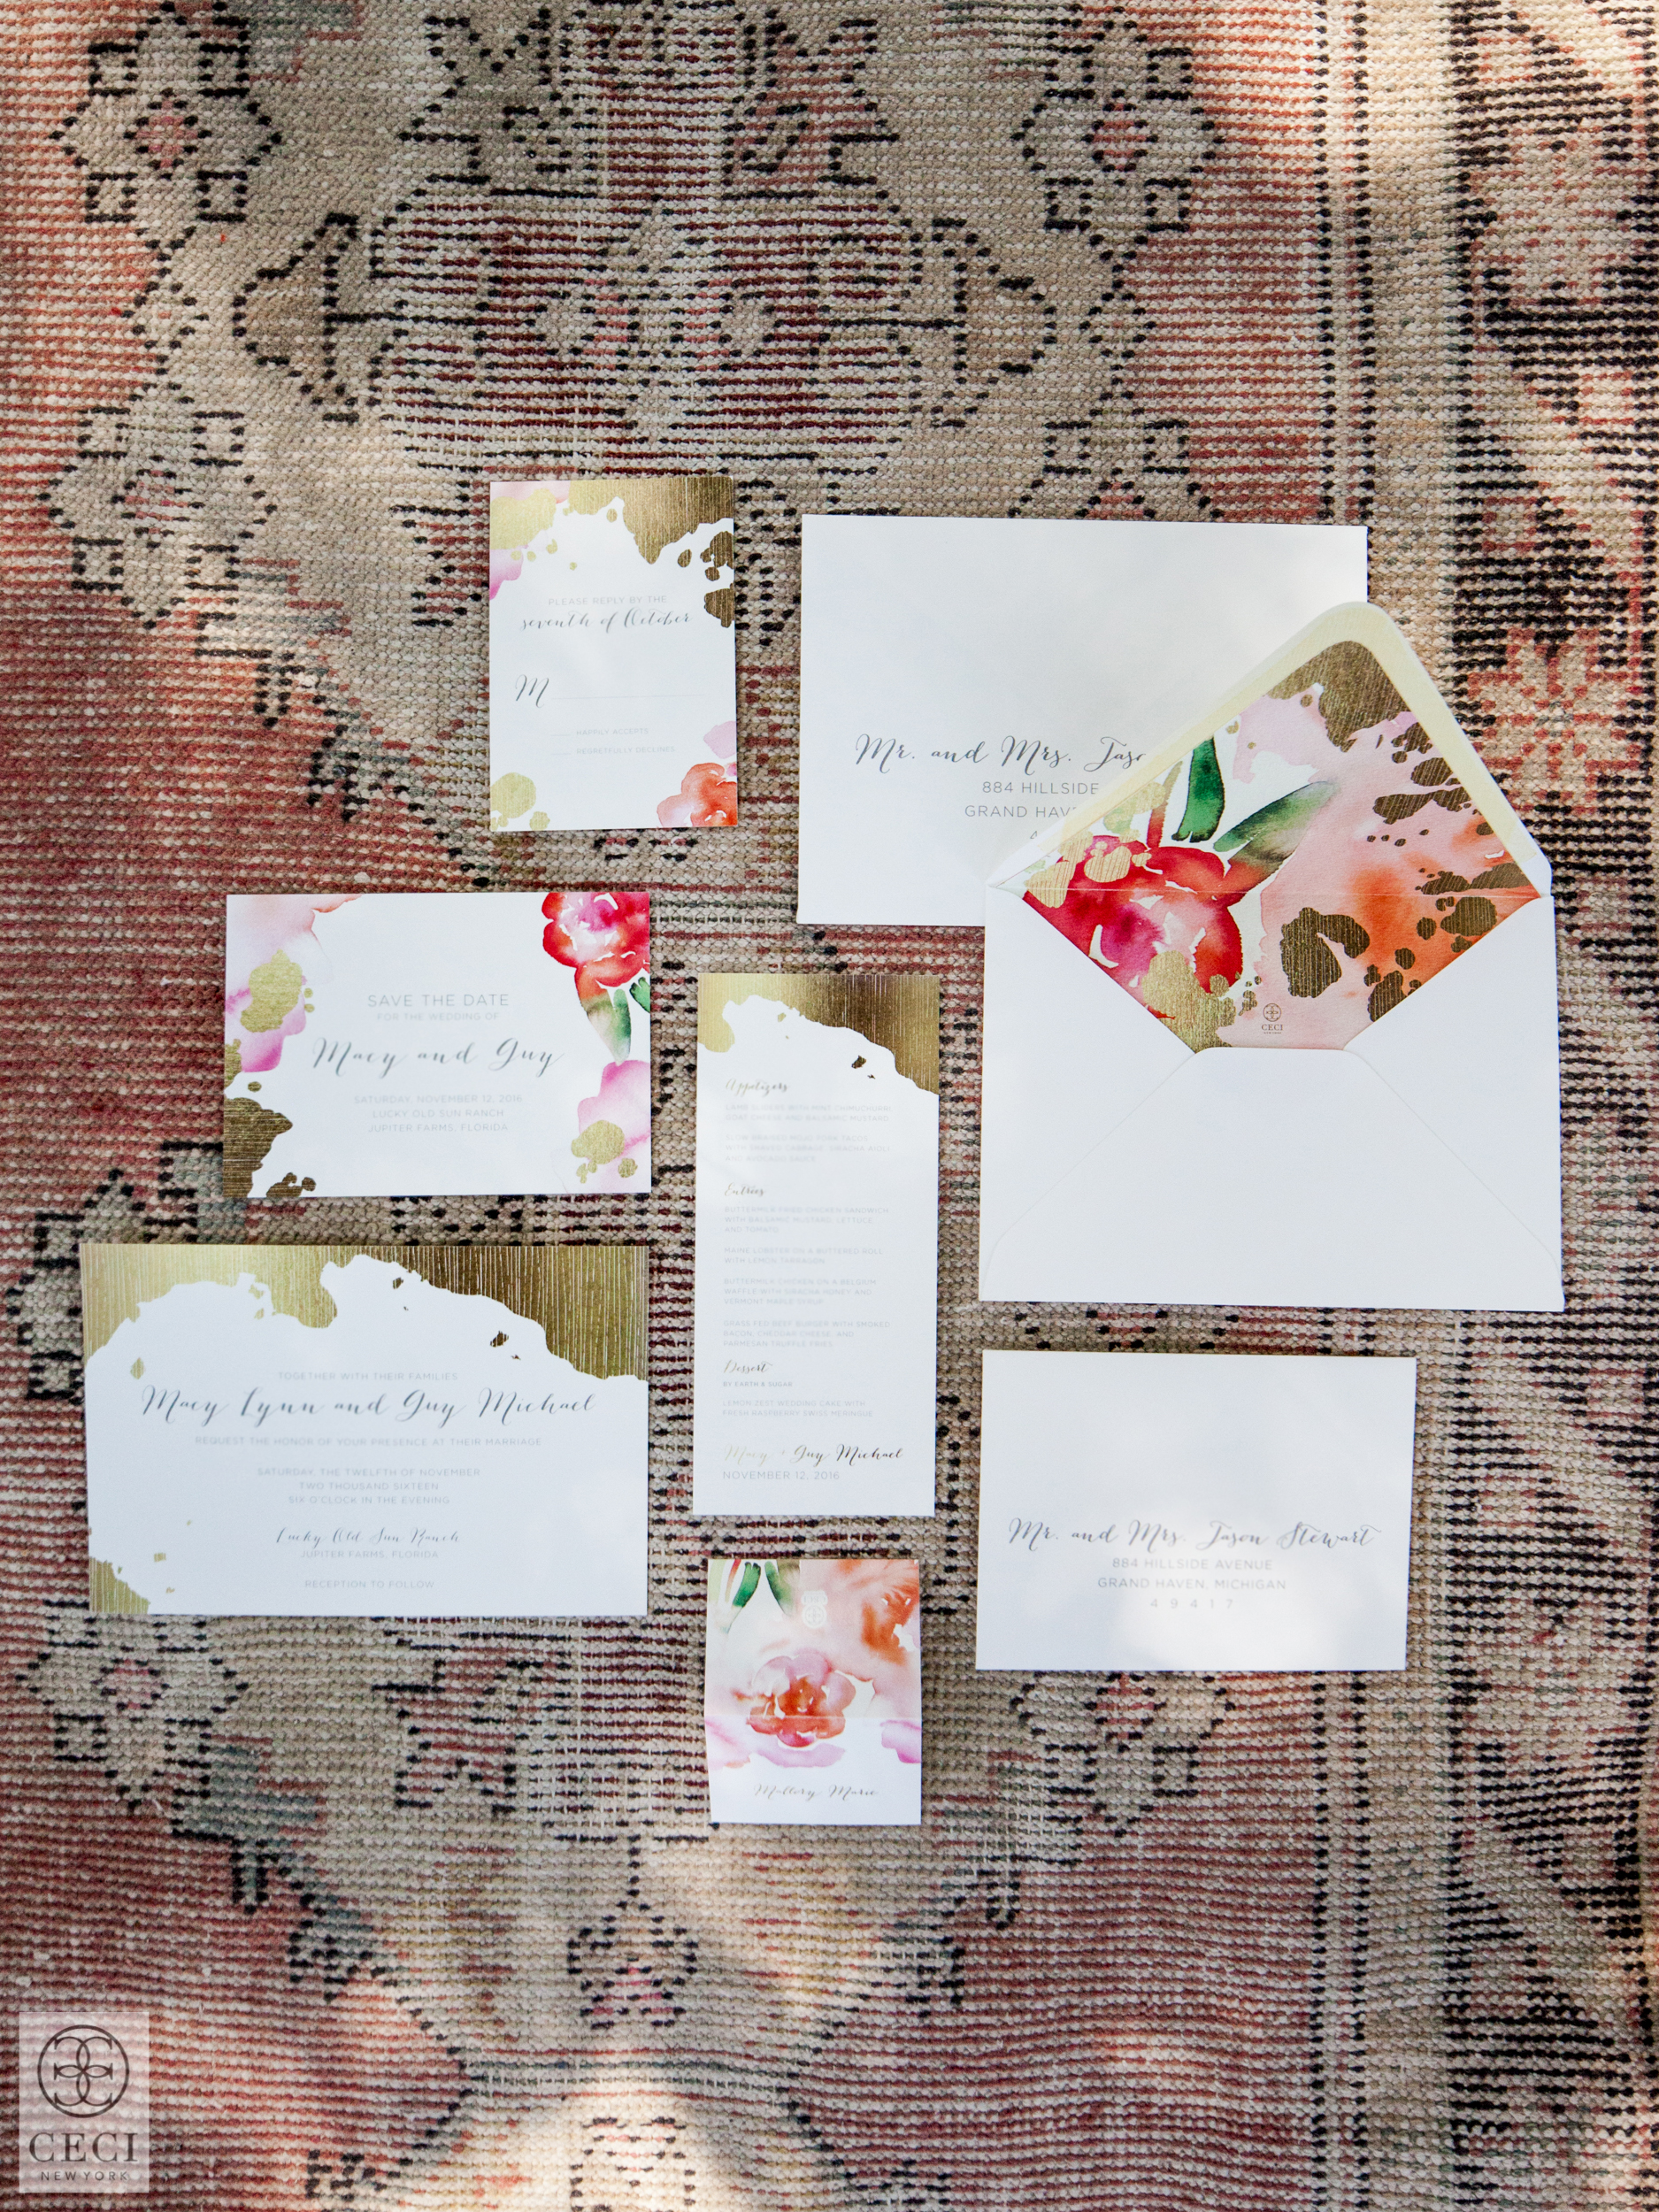 Ceci_New_York_Ceci_Style_Ceci_Johnson_Luxury_Lifestyle_Wedding_Floral_Sara_Kauss_Lucky_Sun_Ranch_Watercolor_Hand_Painted_Inspiration_Design_Custom_Couture_Personalized_Invitations_.jpg